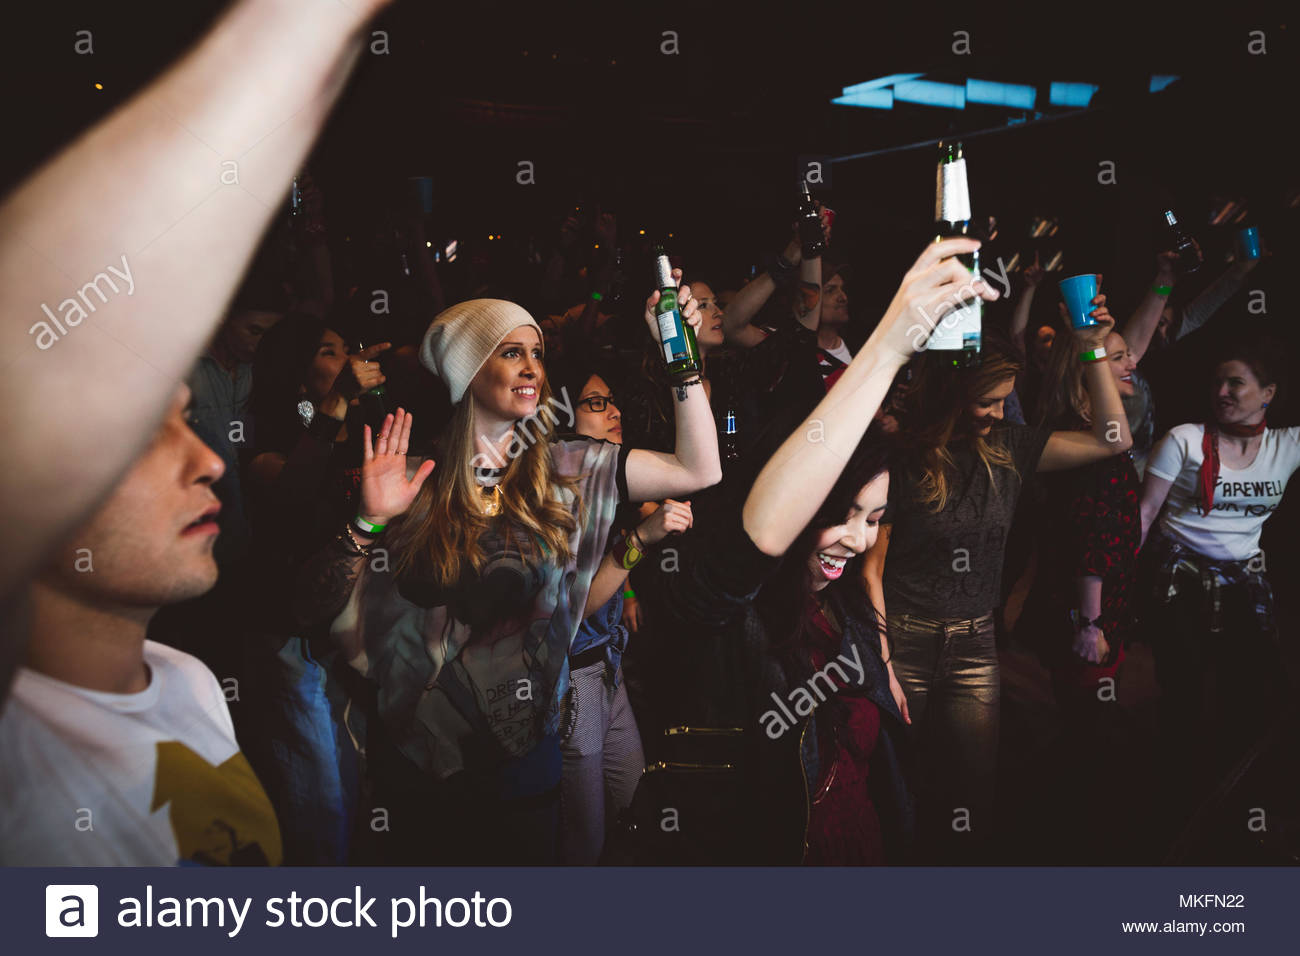 Milennials drinking, dancing and partying in nightclub - Stock Image